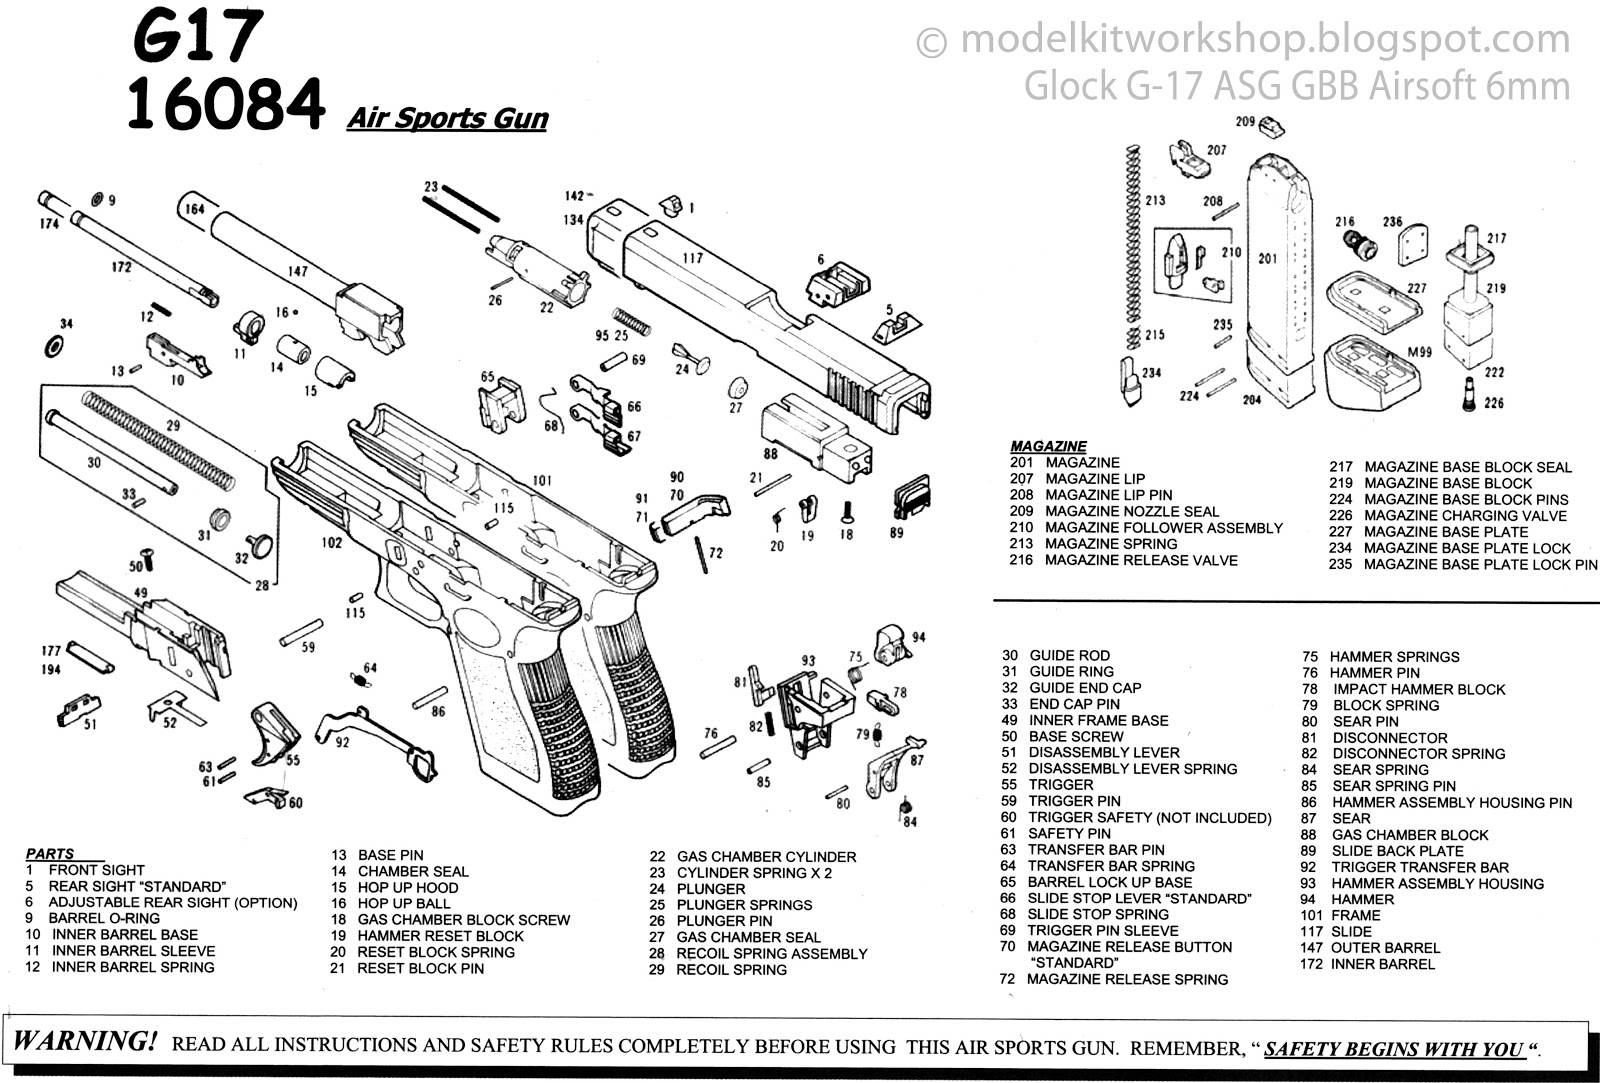 MODELKIT WORKSHOP: Airsoft : ASG Glock G-17